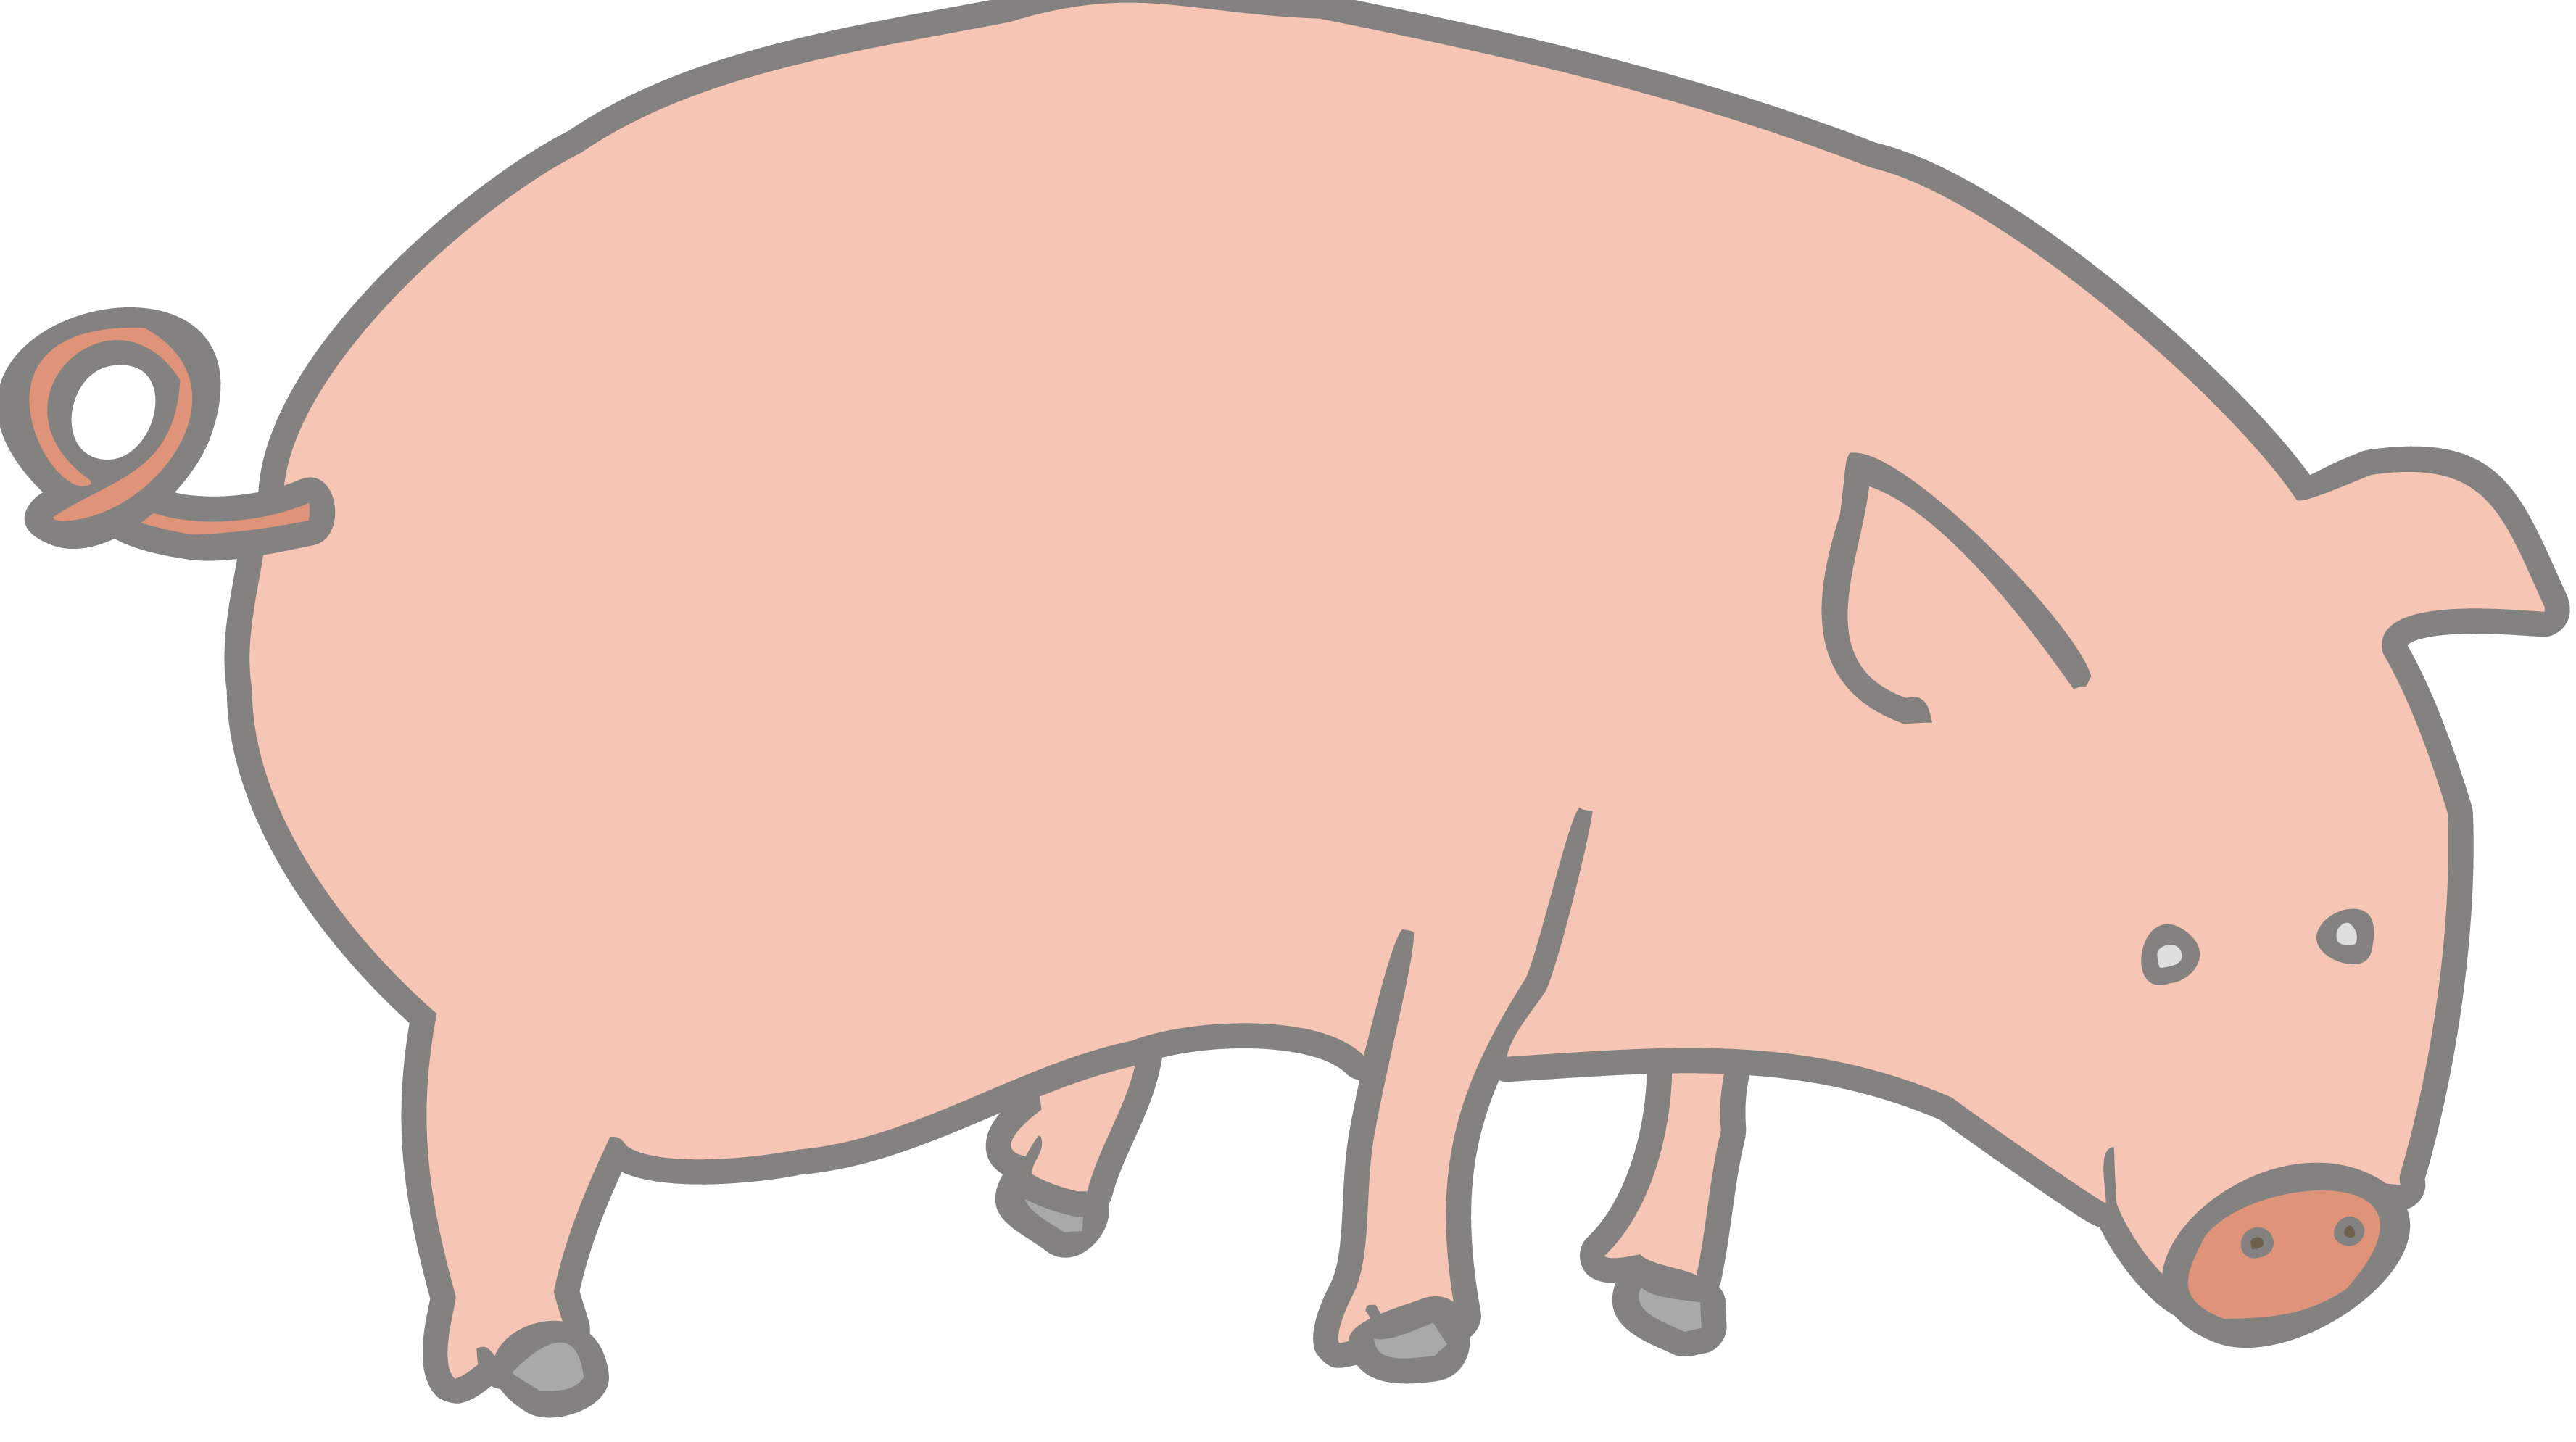 Porkers clipart #18, Download drawings